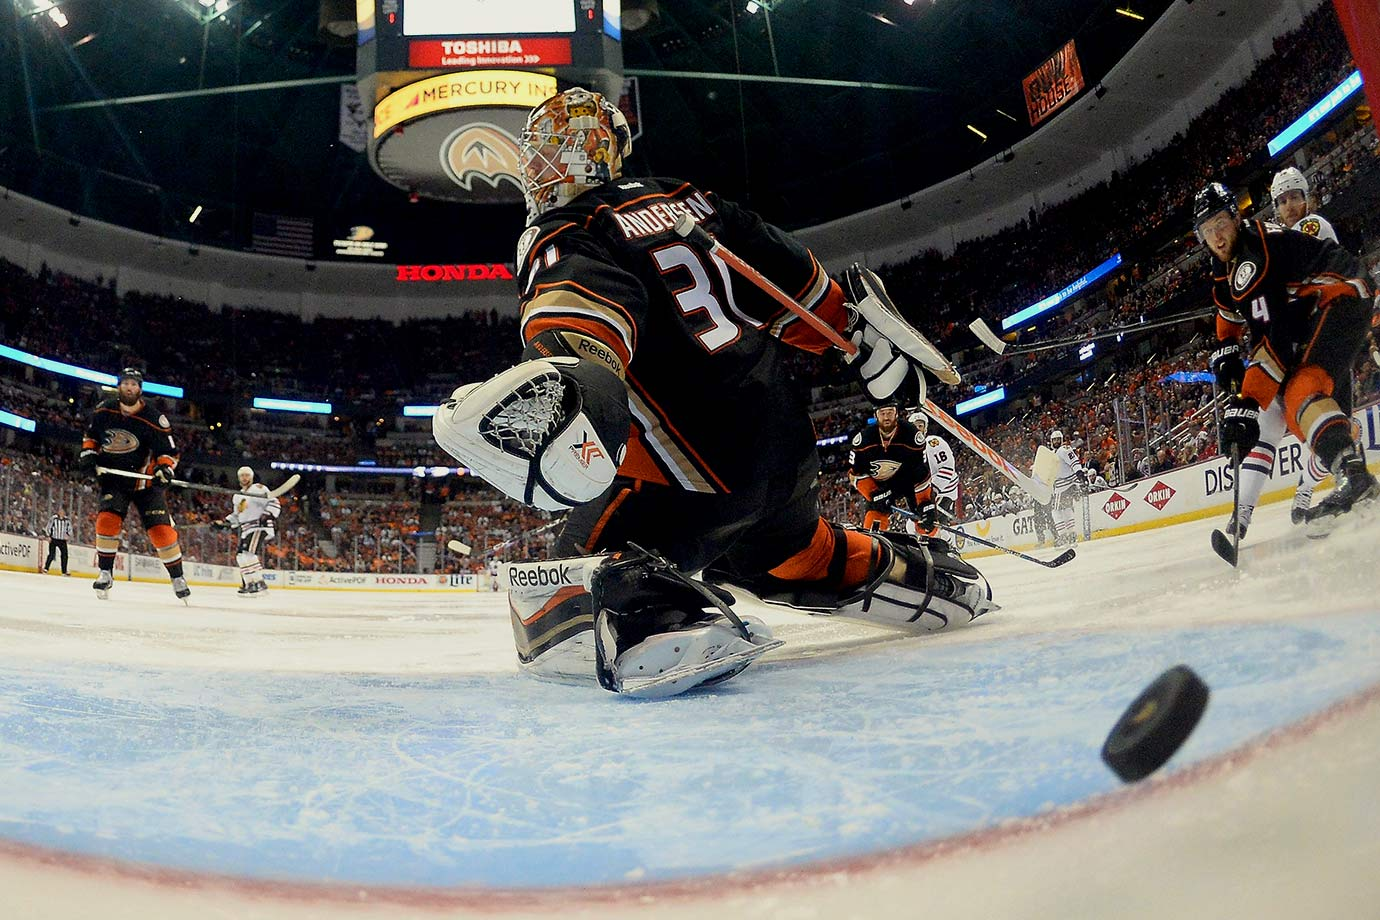 Can you really trust a team that blows a 3-2 series lead and then fails to clinch at home in Game 7... three years in a row? These Ducks have plenty of talent. What they're lacking is heart.